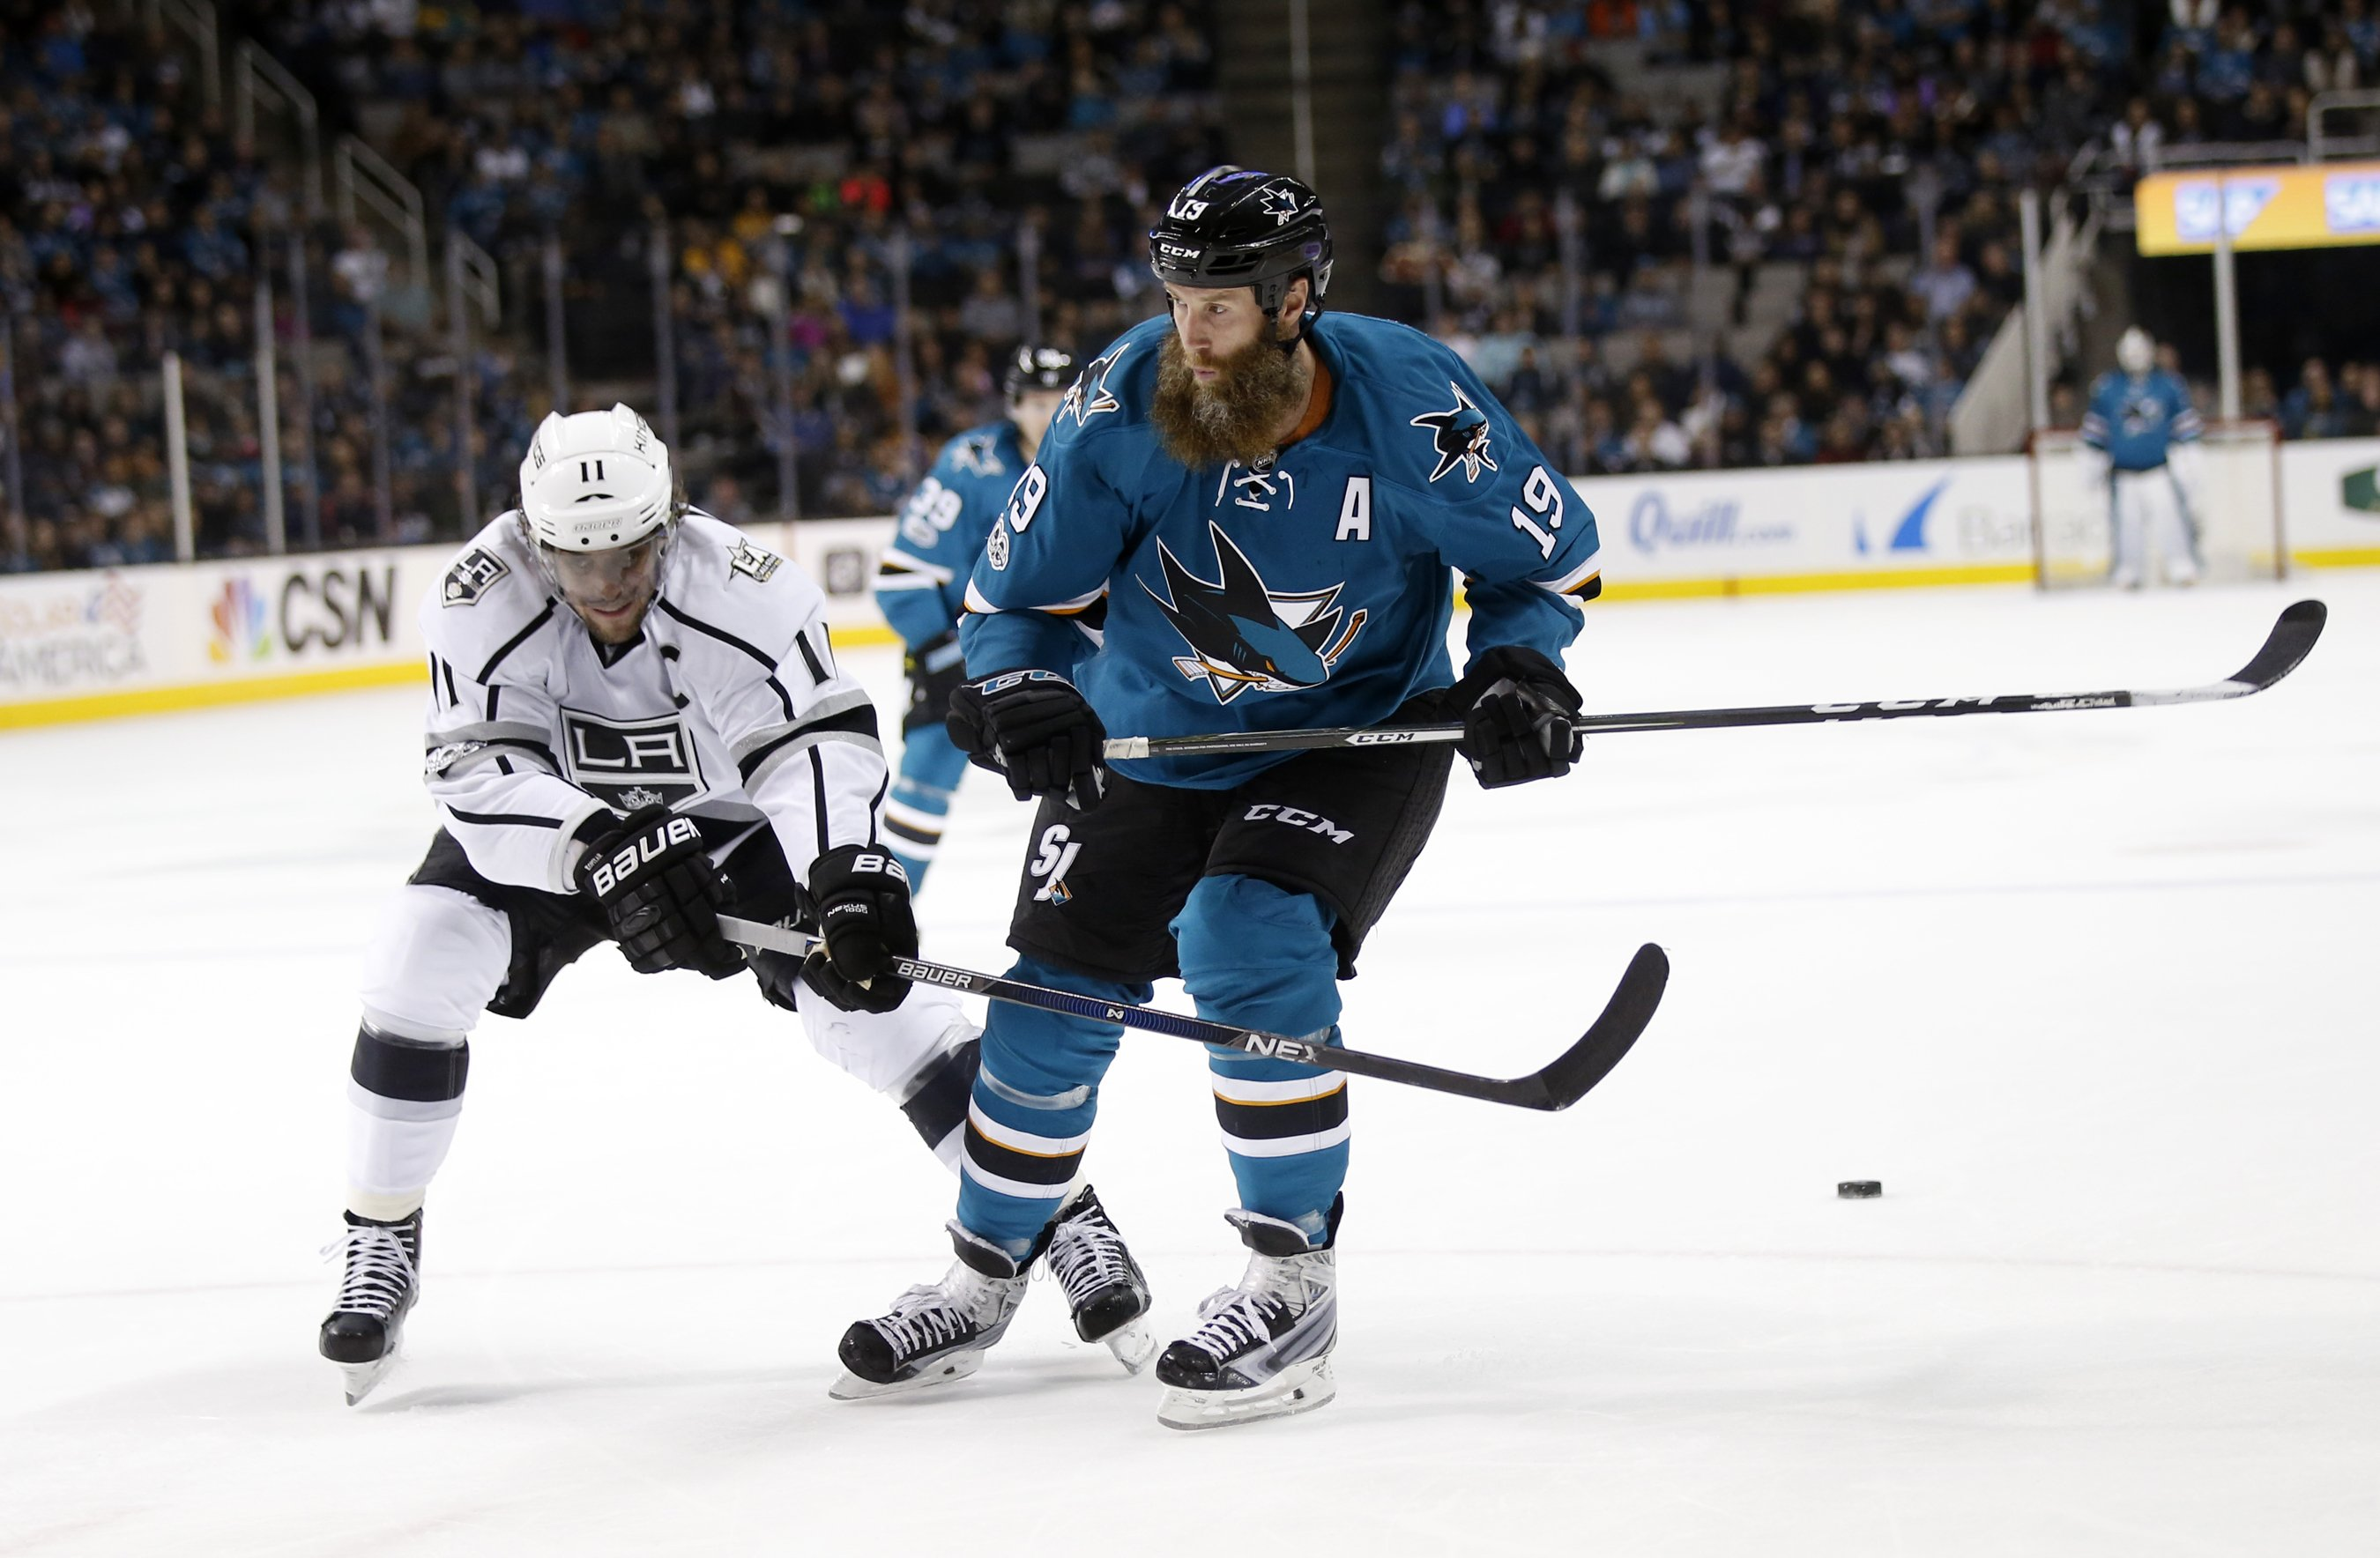 Sharks look to rebound from opening loss, host Kings""